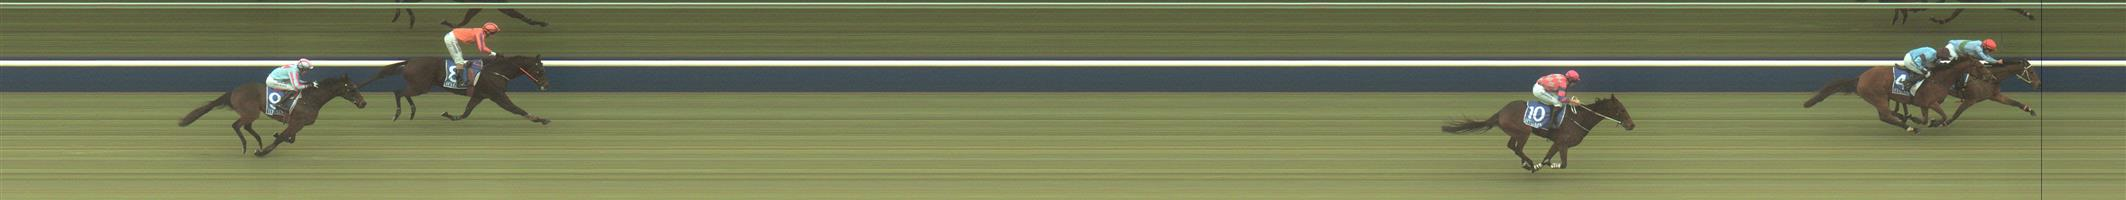 CASTERTON Race 2 No. 9 Truly High @ $5 NB: Hurdle race   Result : Unplaced at SP $5.00. Lost touch in the back straight when speed & pressure applied and boxed on to finish unplaced. Outcome -1.25 Units.